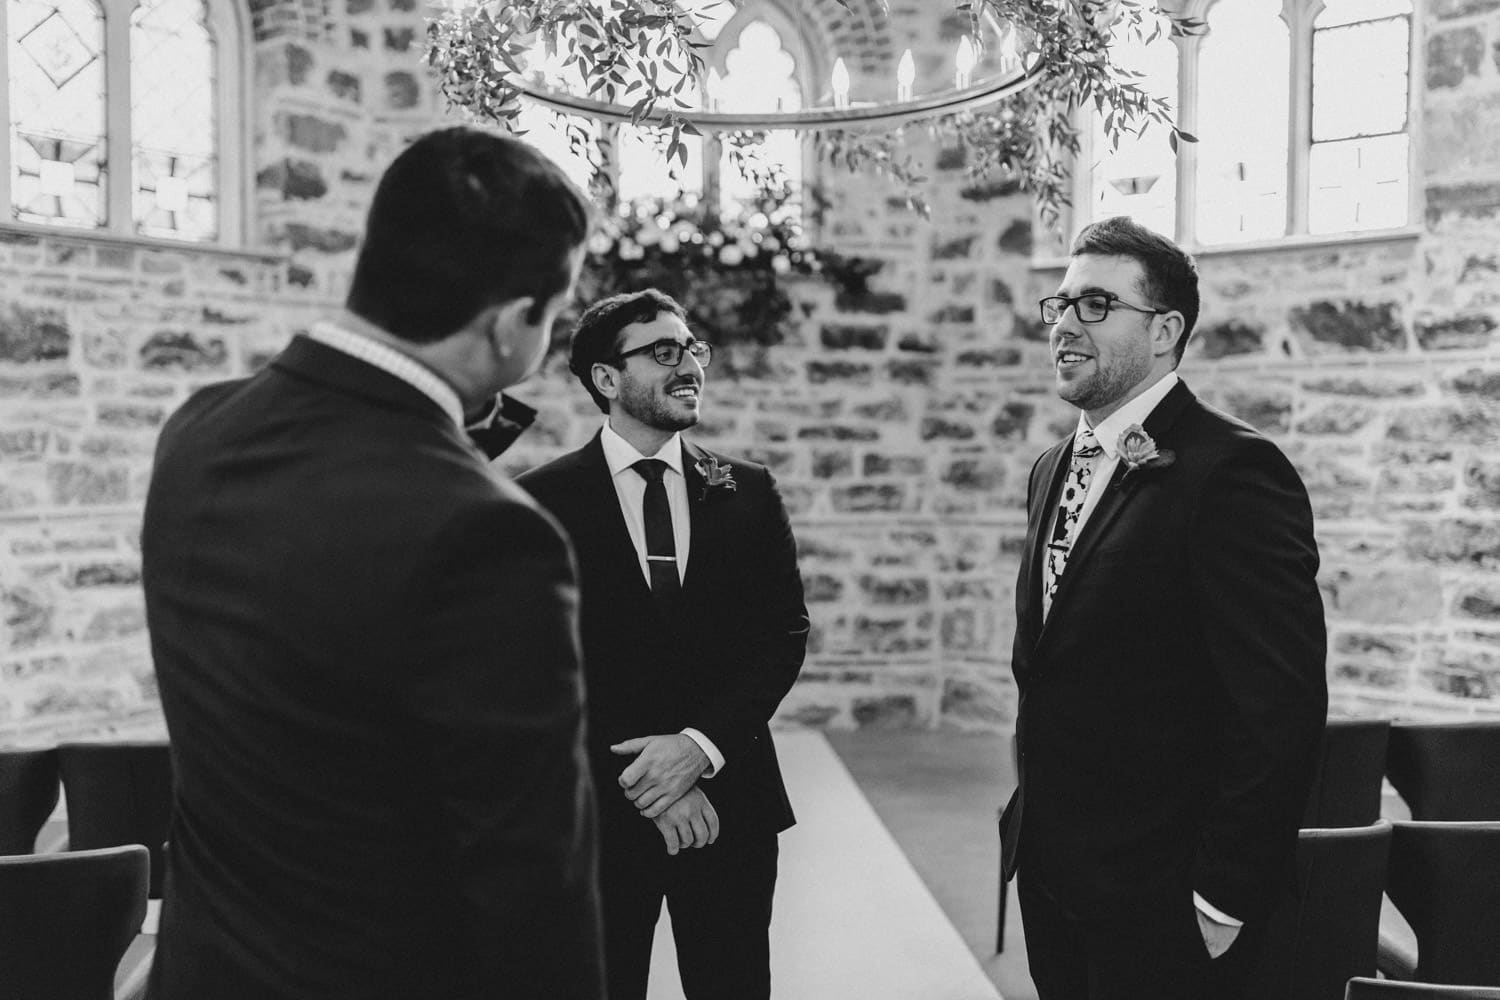 groom chats with groomsmen ahead of wedding ceremony